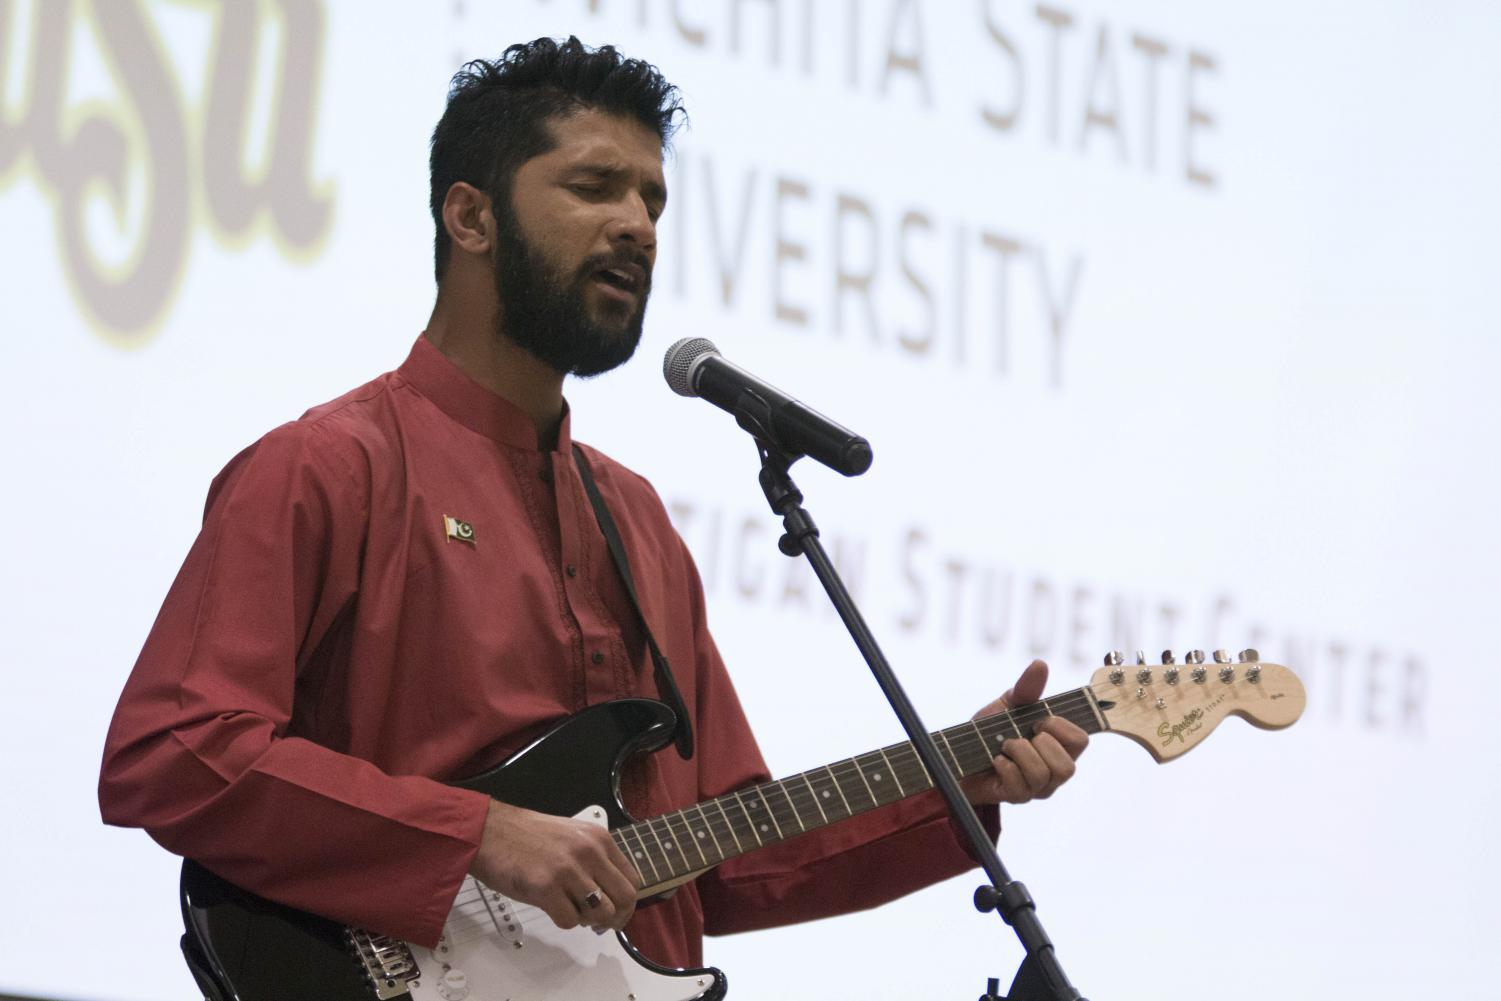 Sajjad Naqvi plays guitar and sings during Pakistan Night held in the Beggs Ballroom of the RSC Sunday evening.